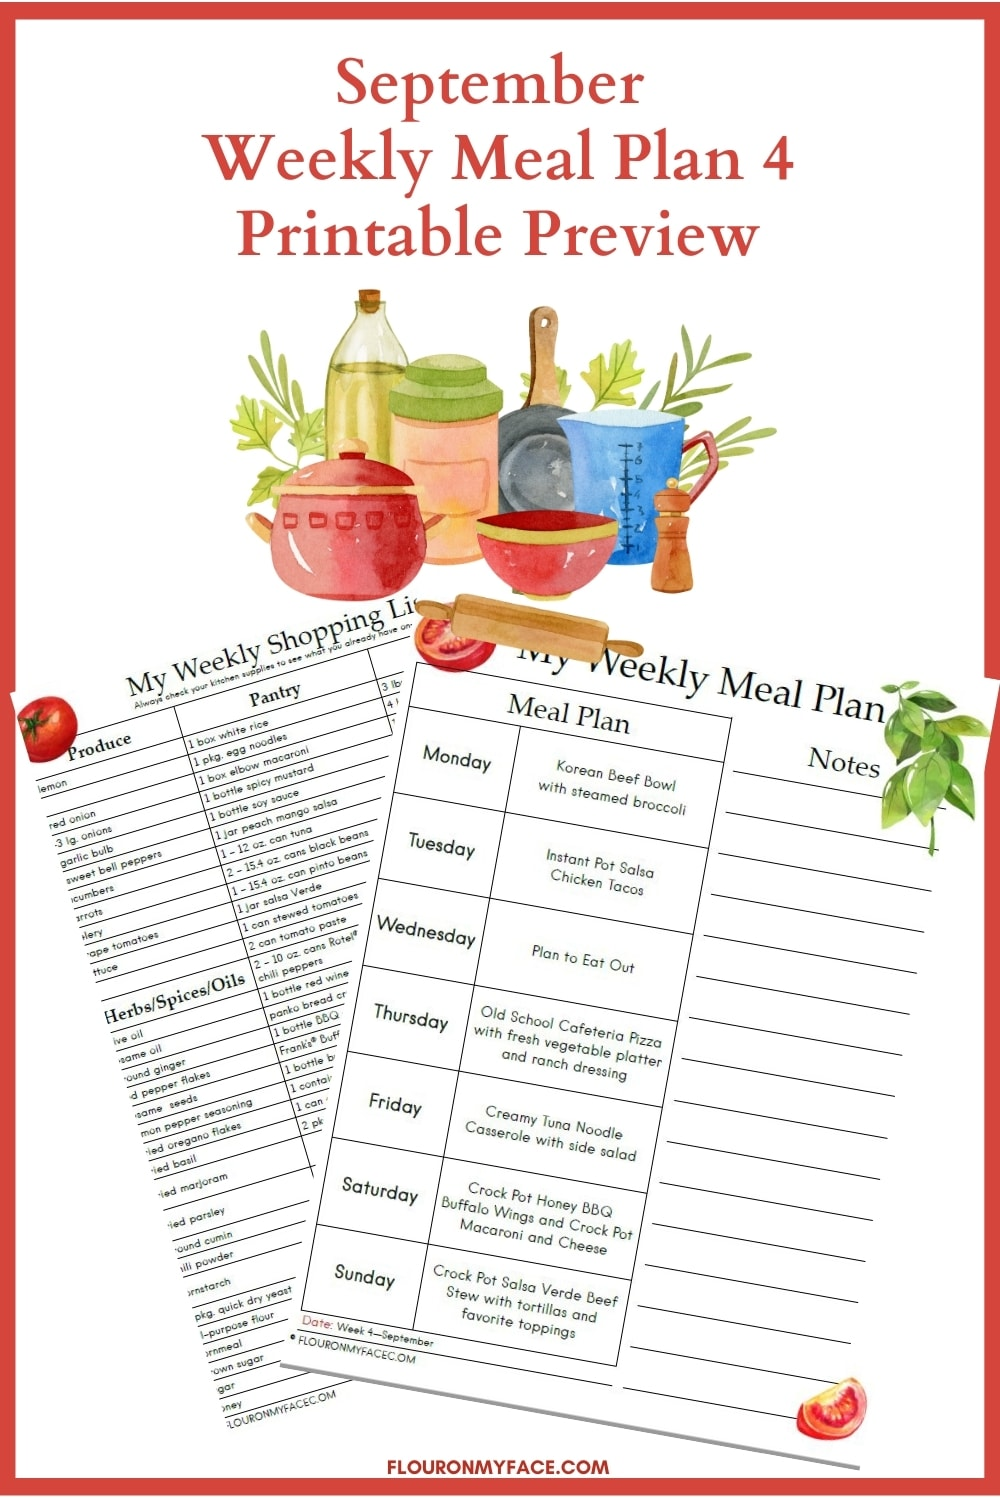 September Weekly Meal Plan Week 4 Printable Preview